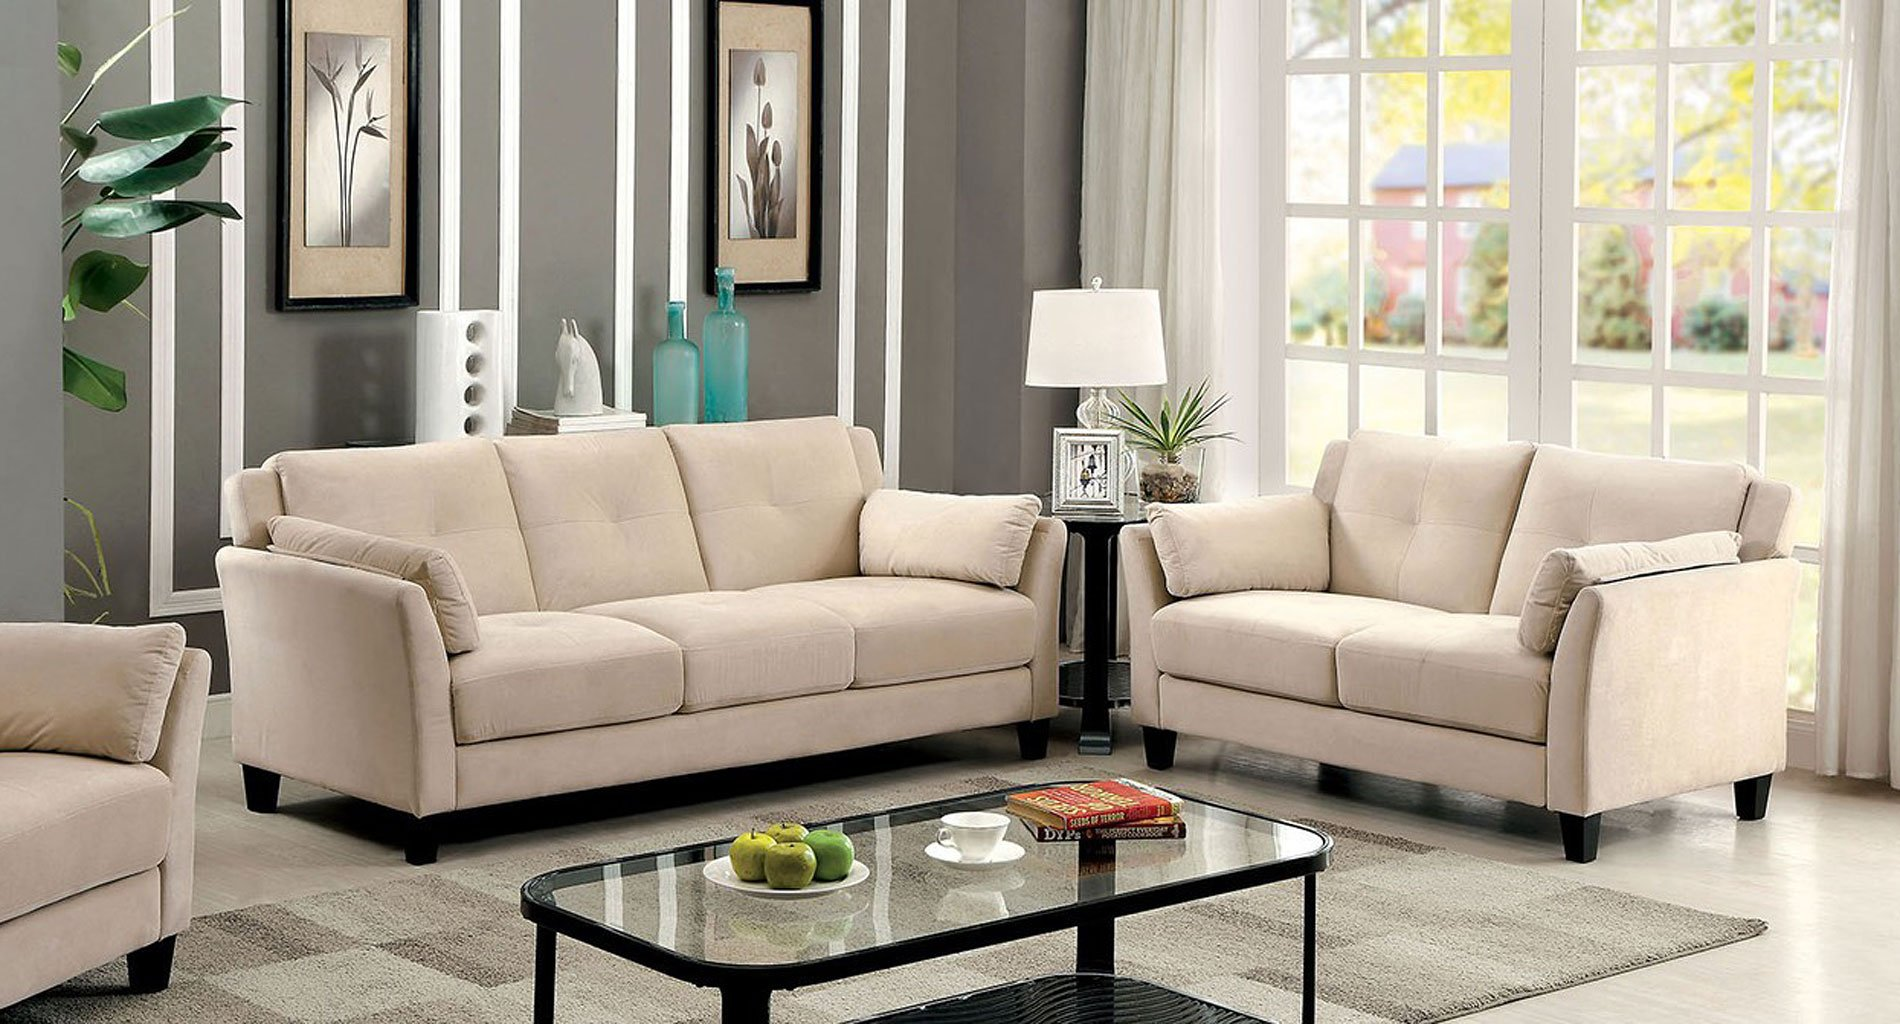 Ysabel Living Room Set (Beige)